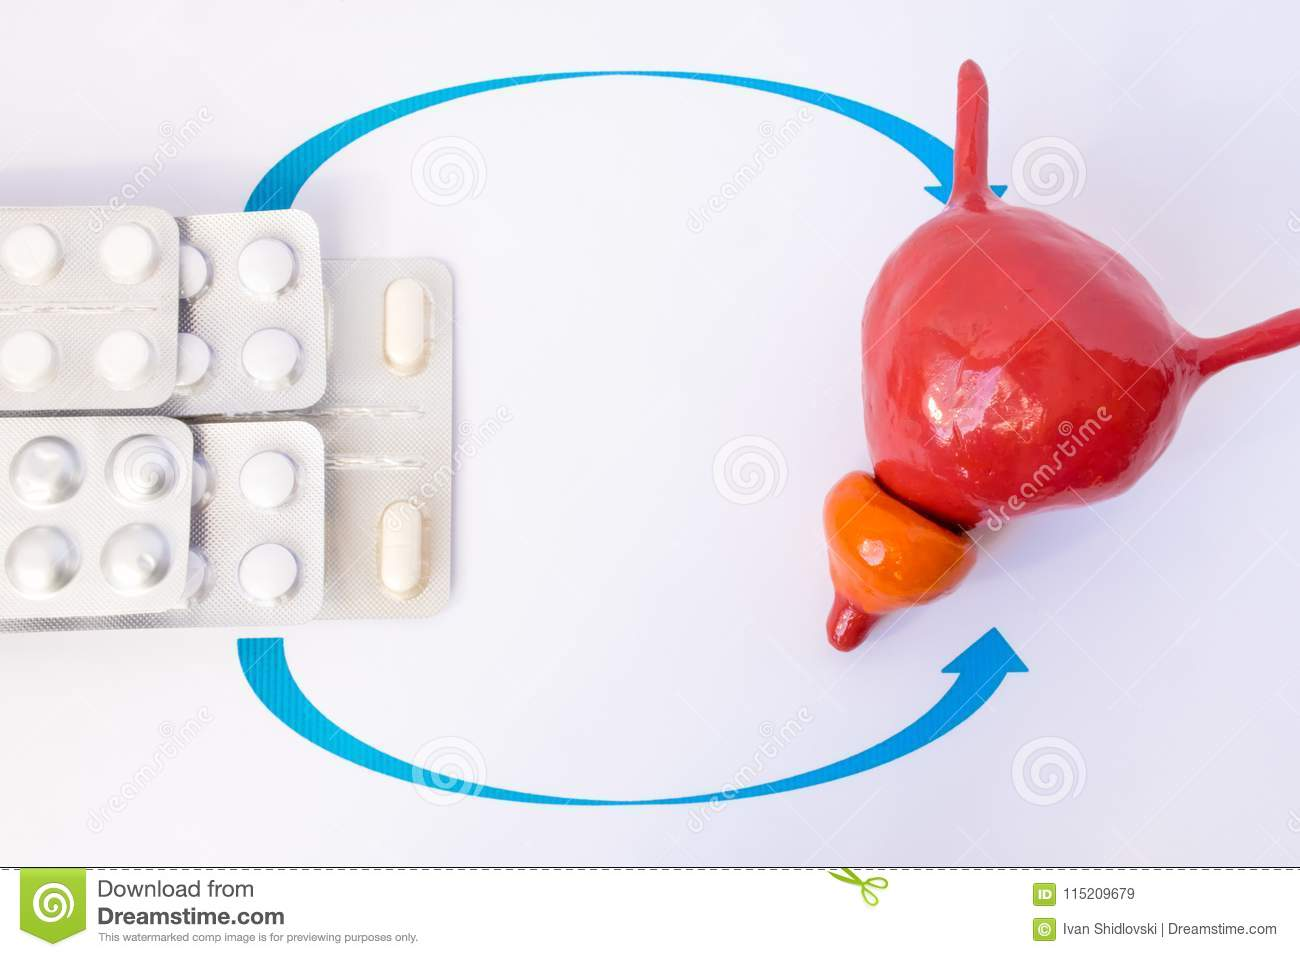 Stack of blisters with tablets or pill indicated by arrows in anatomic model of prostate gland and bladder. Concept photo of treat